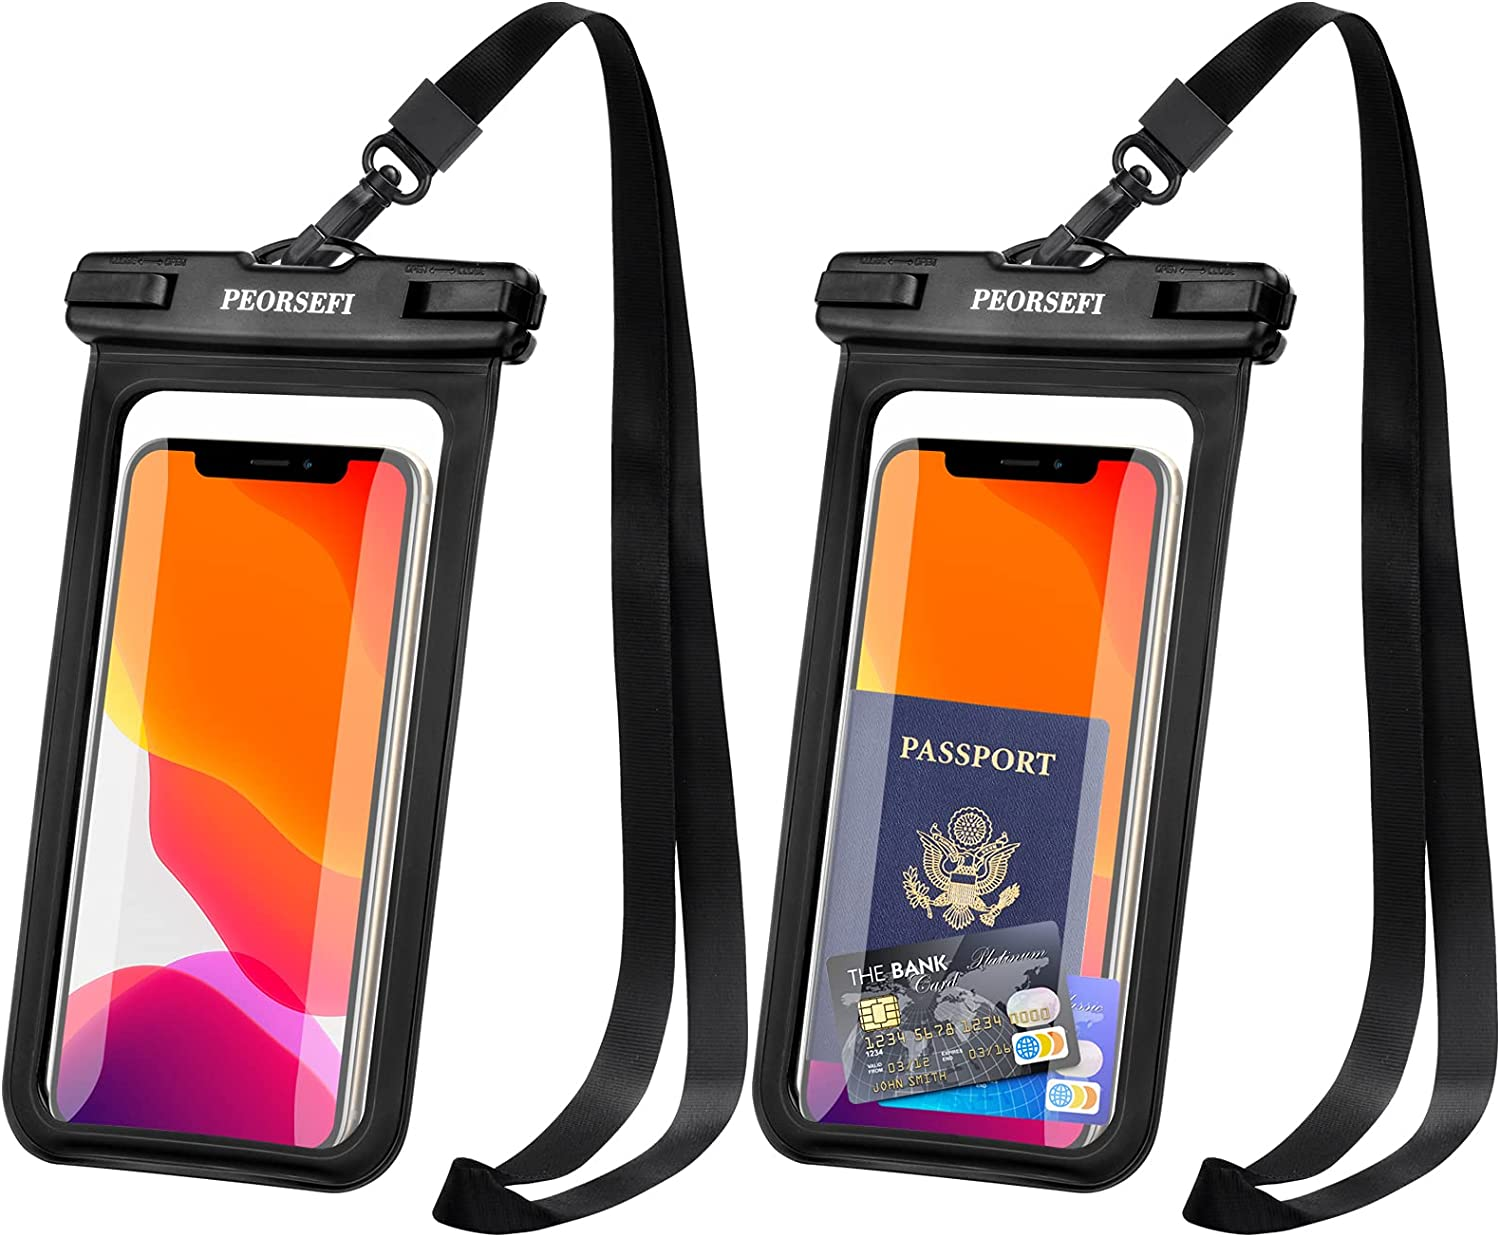 PEORSEFI Universal Waterproof Phone Pouch - iPhone Waterproof Case Compatible for iPhone Pro Max Xs Max XR X 8 7 6S Plus SE Samsung up to 7